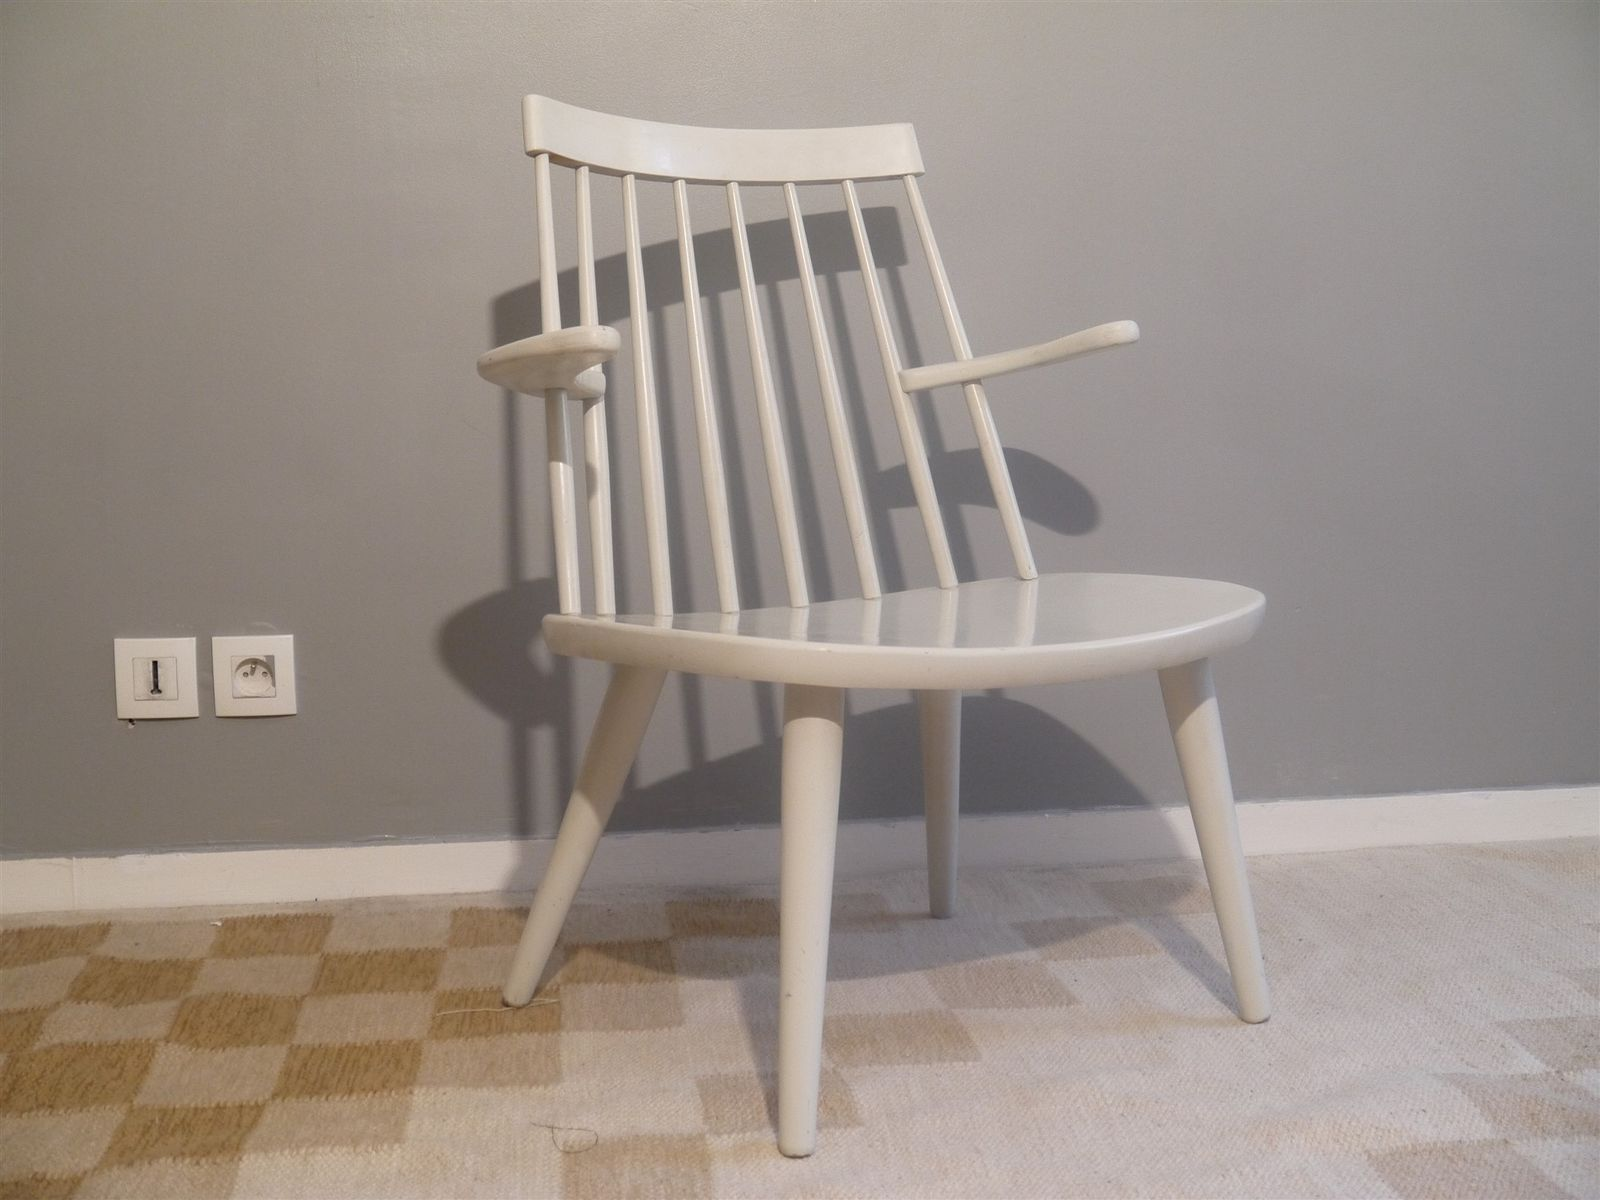 Vintage Sibbo Armchair by Yngve Ekstrom for Stolab, 1950s for sale at Pamono